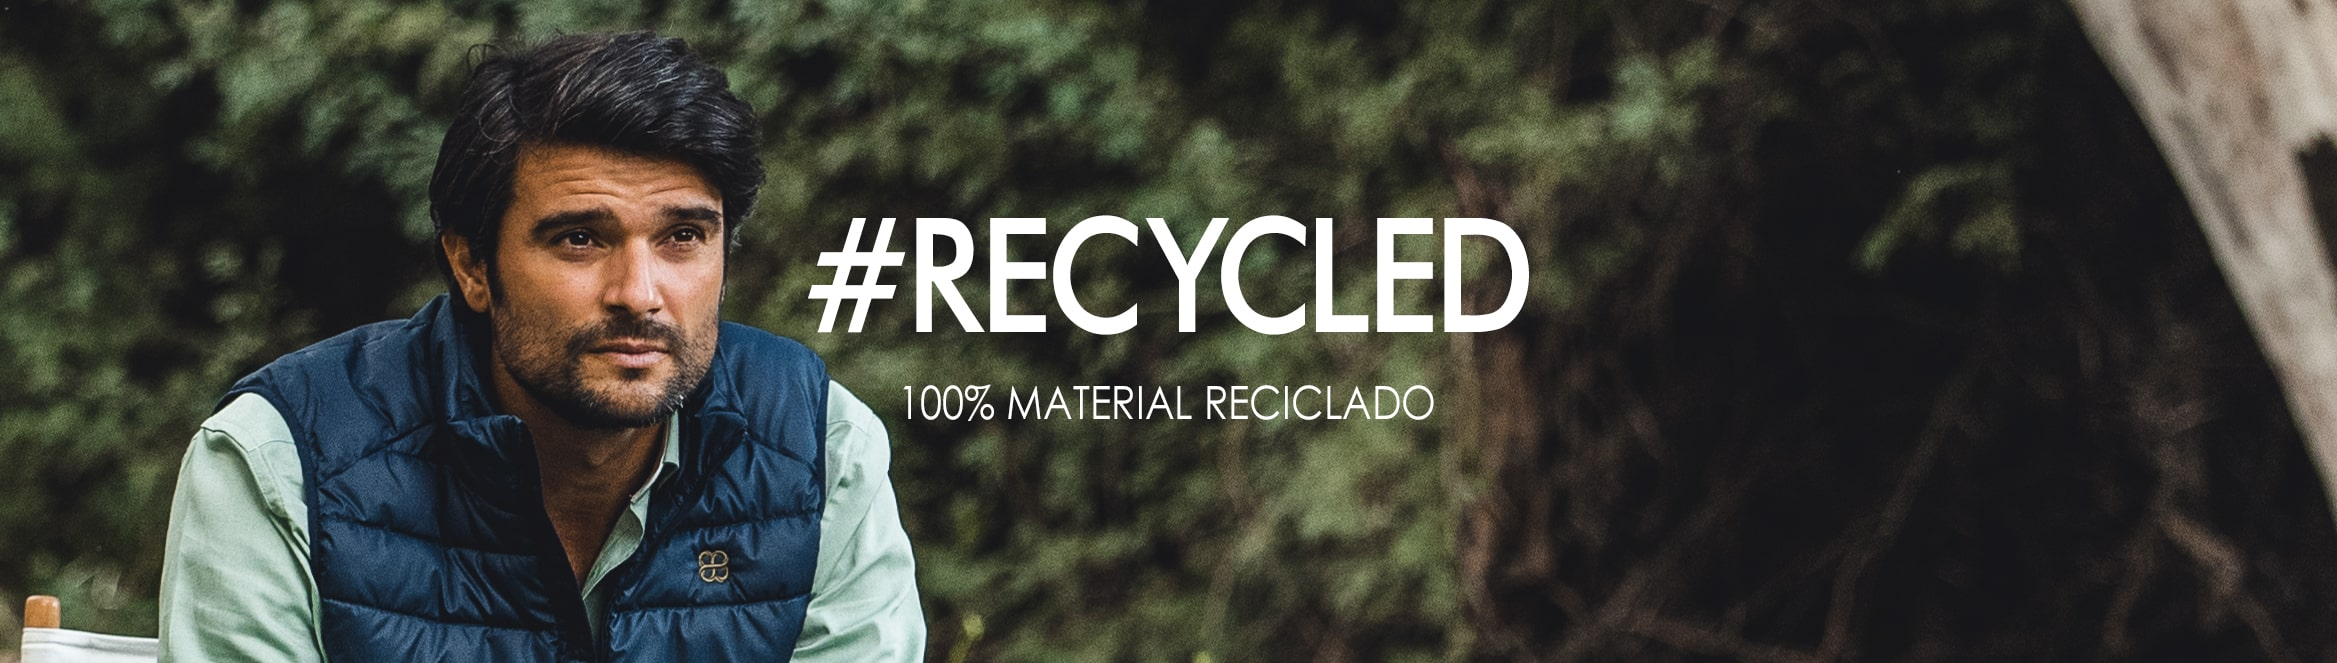 #RECYCLED